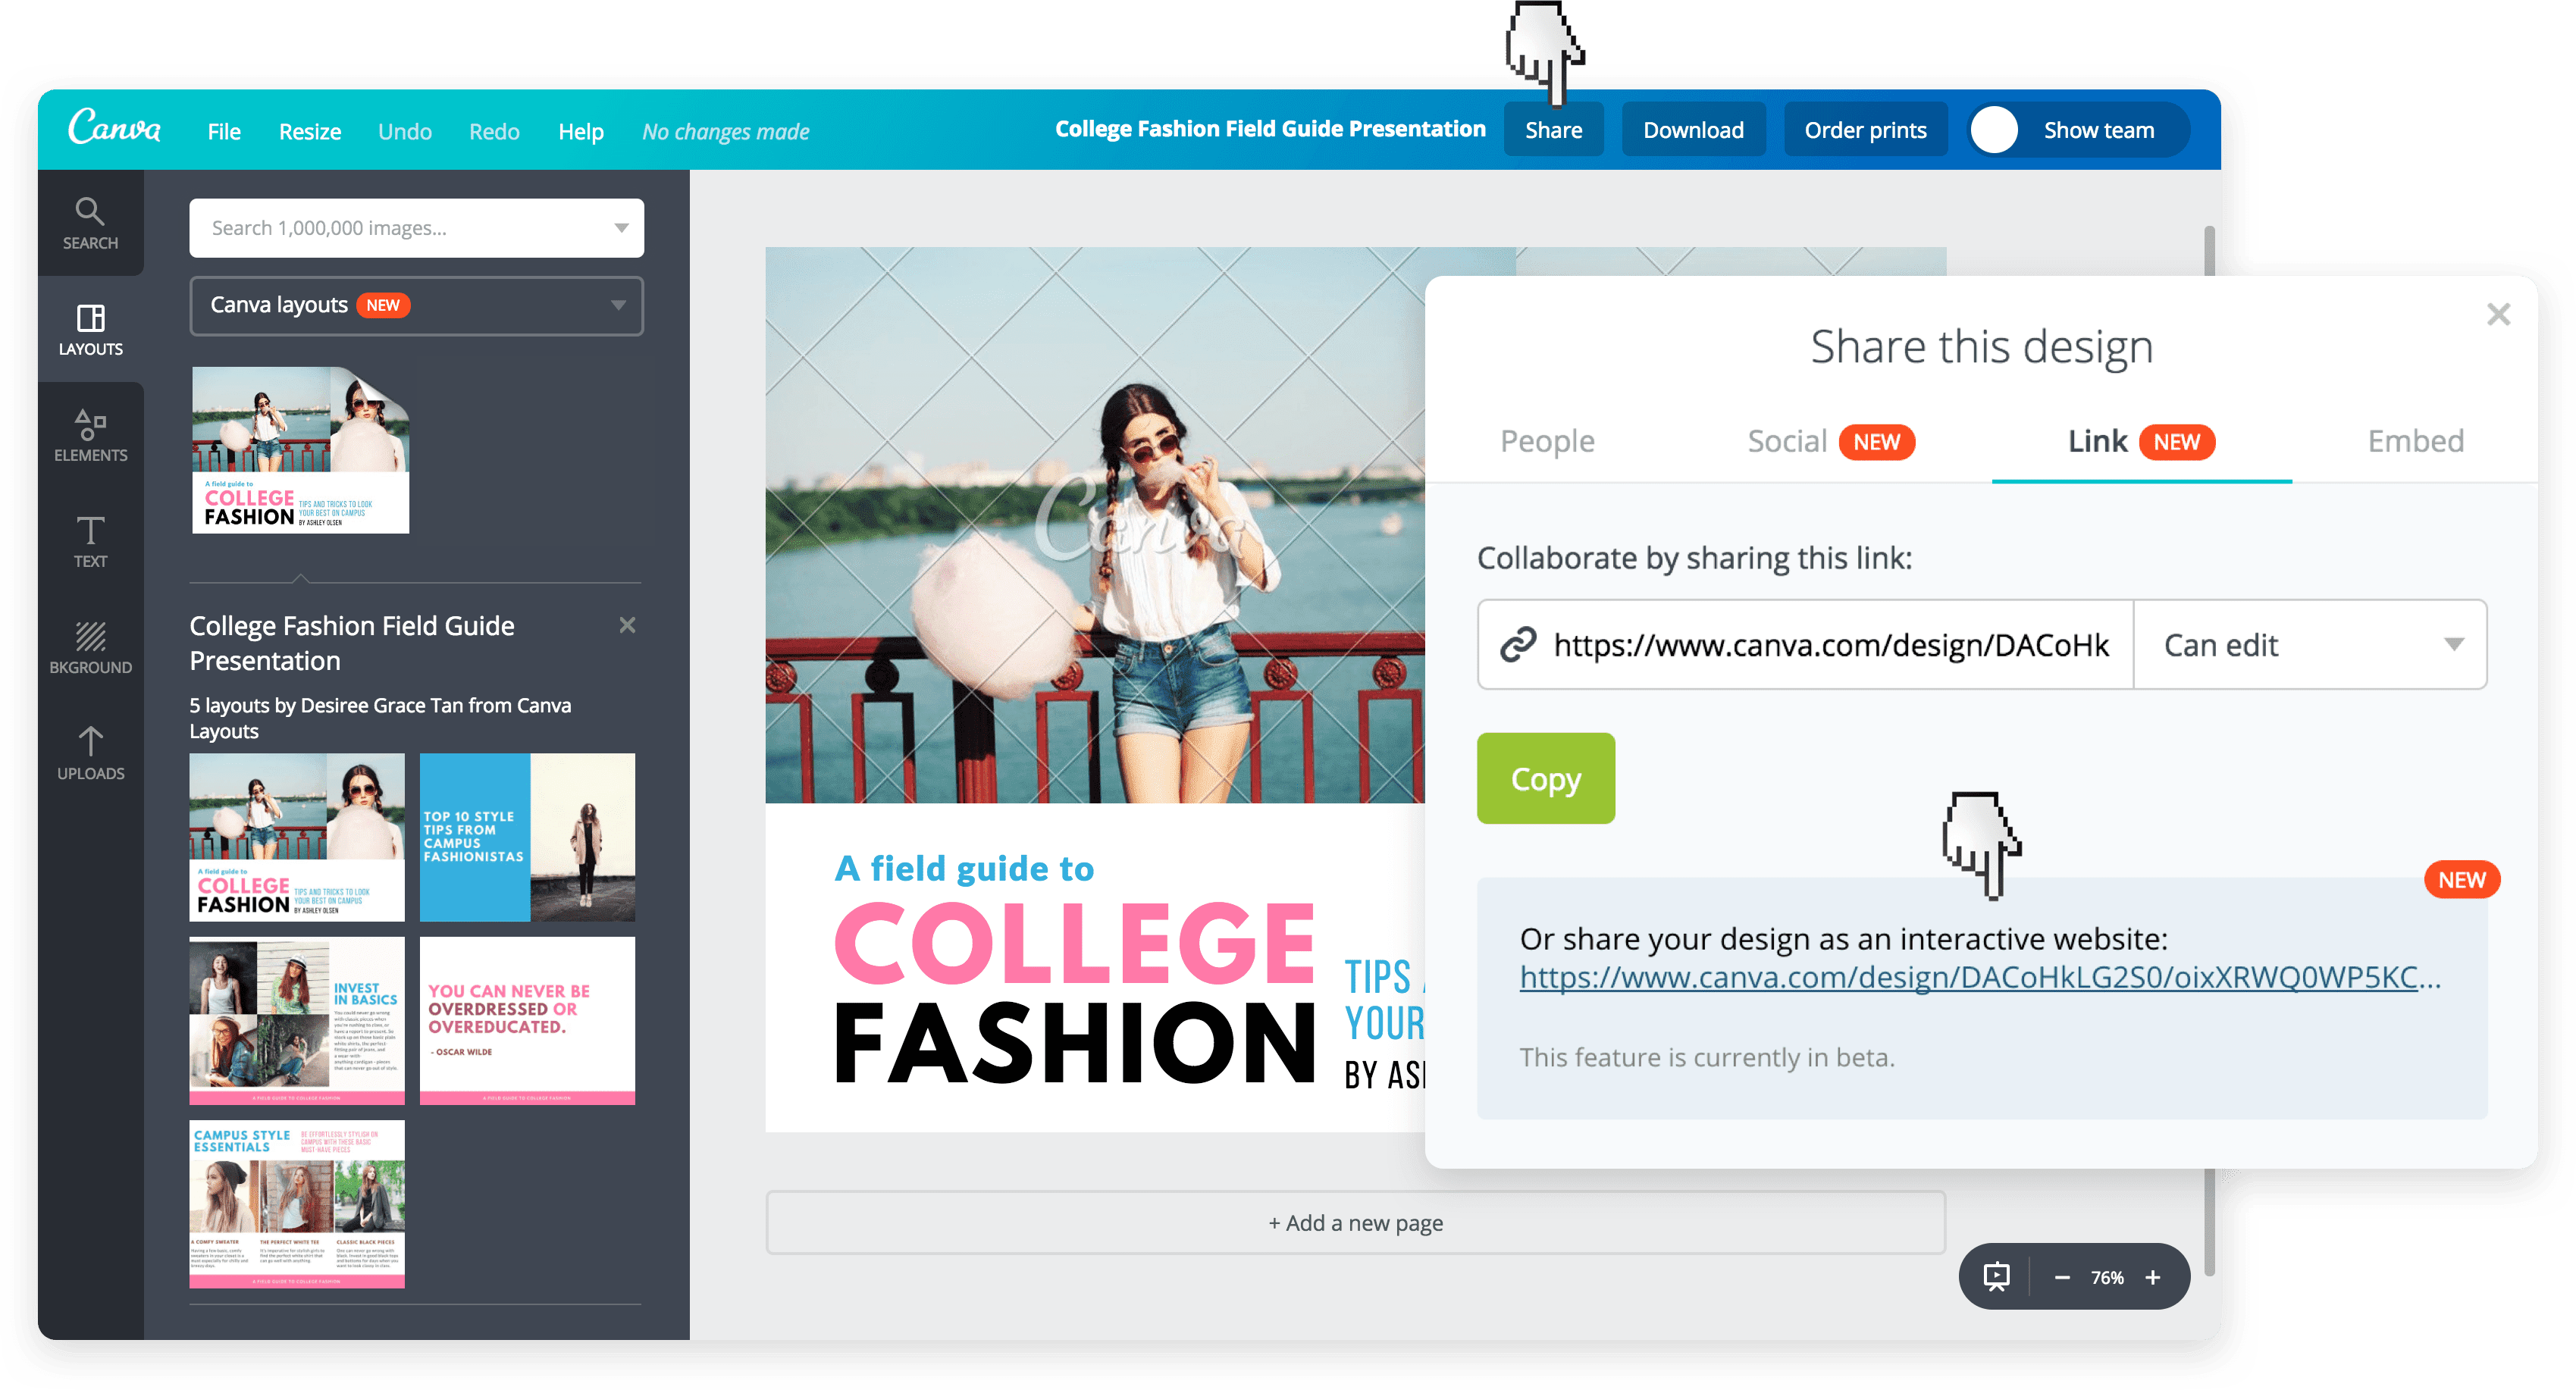 Canva share design link with team